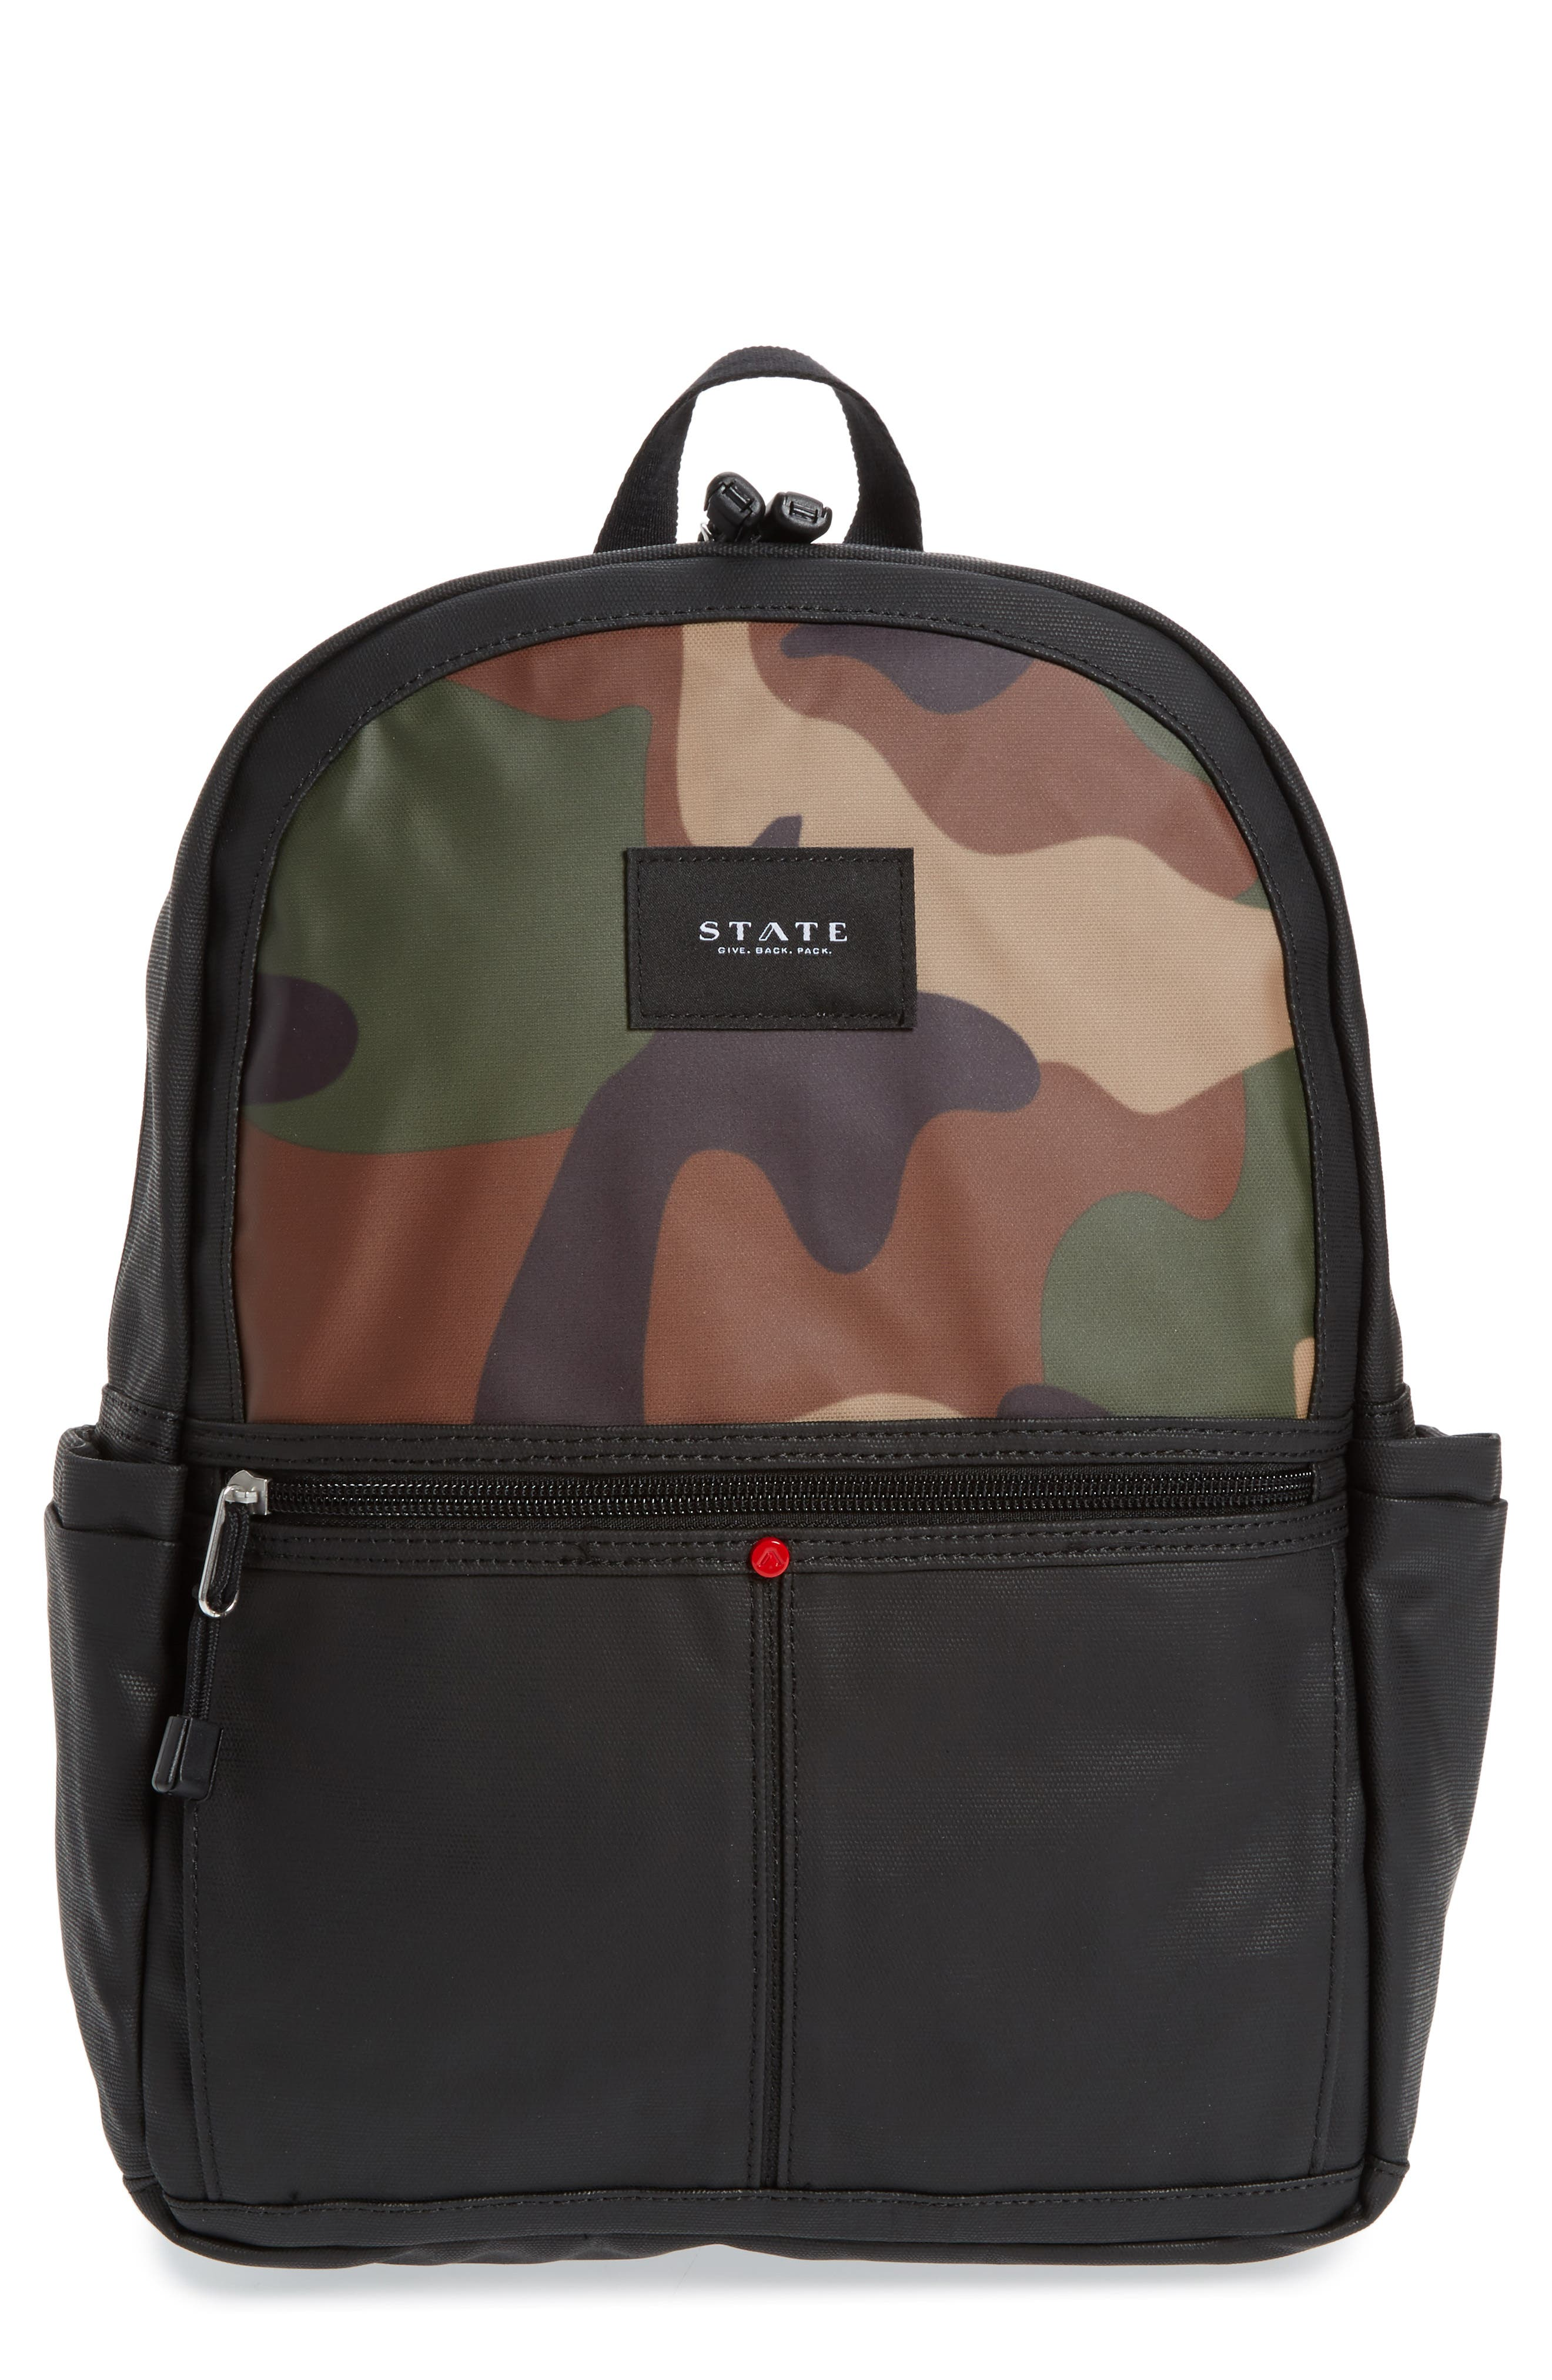 STATE BAGS Greenpoint Kane Backpack